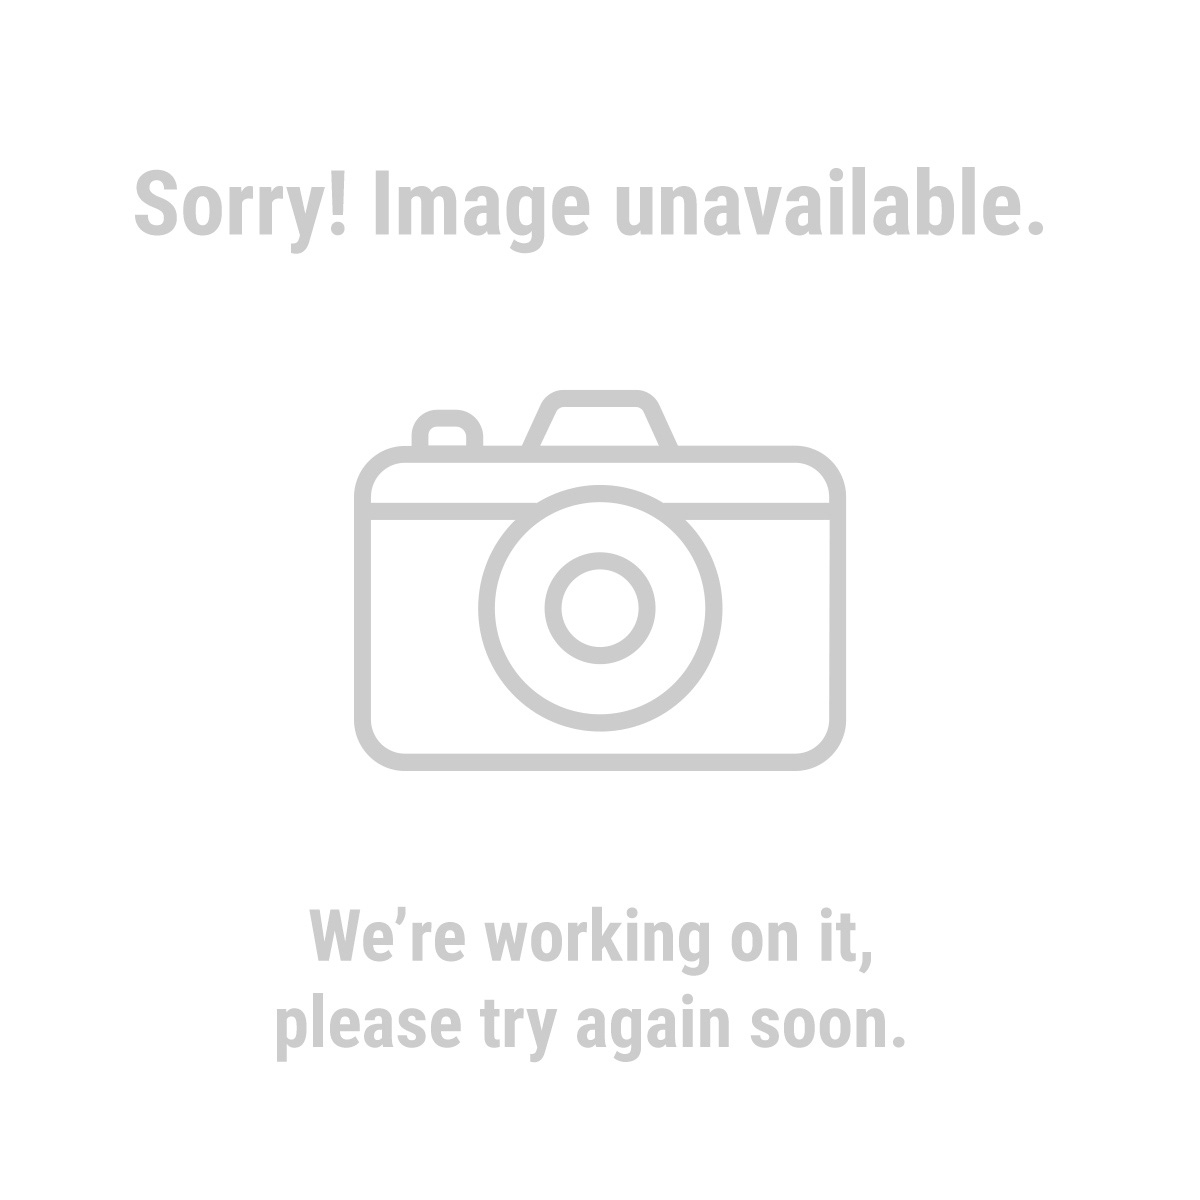 90991 3'' x 1-1/4'' Rubber Swivel Caster